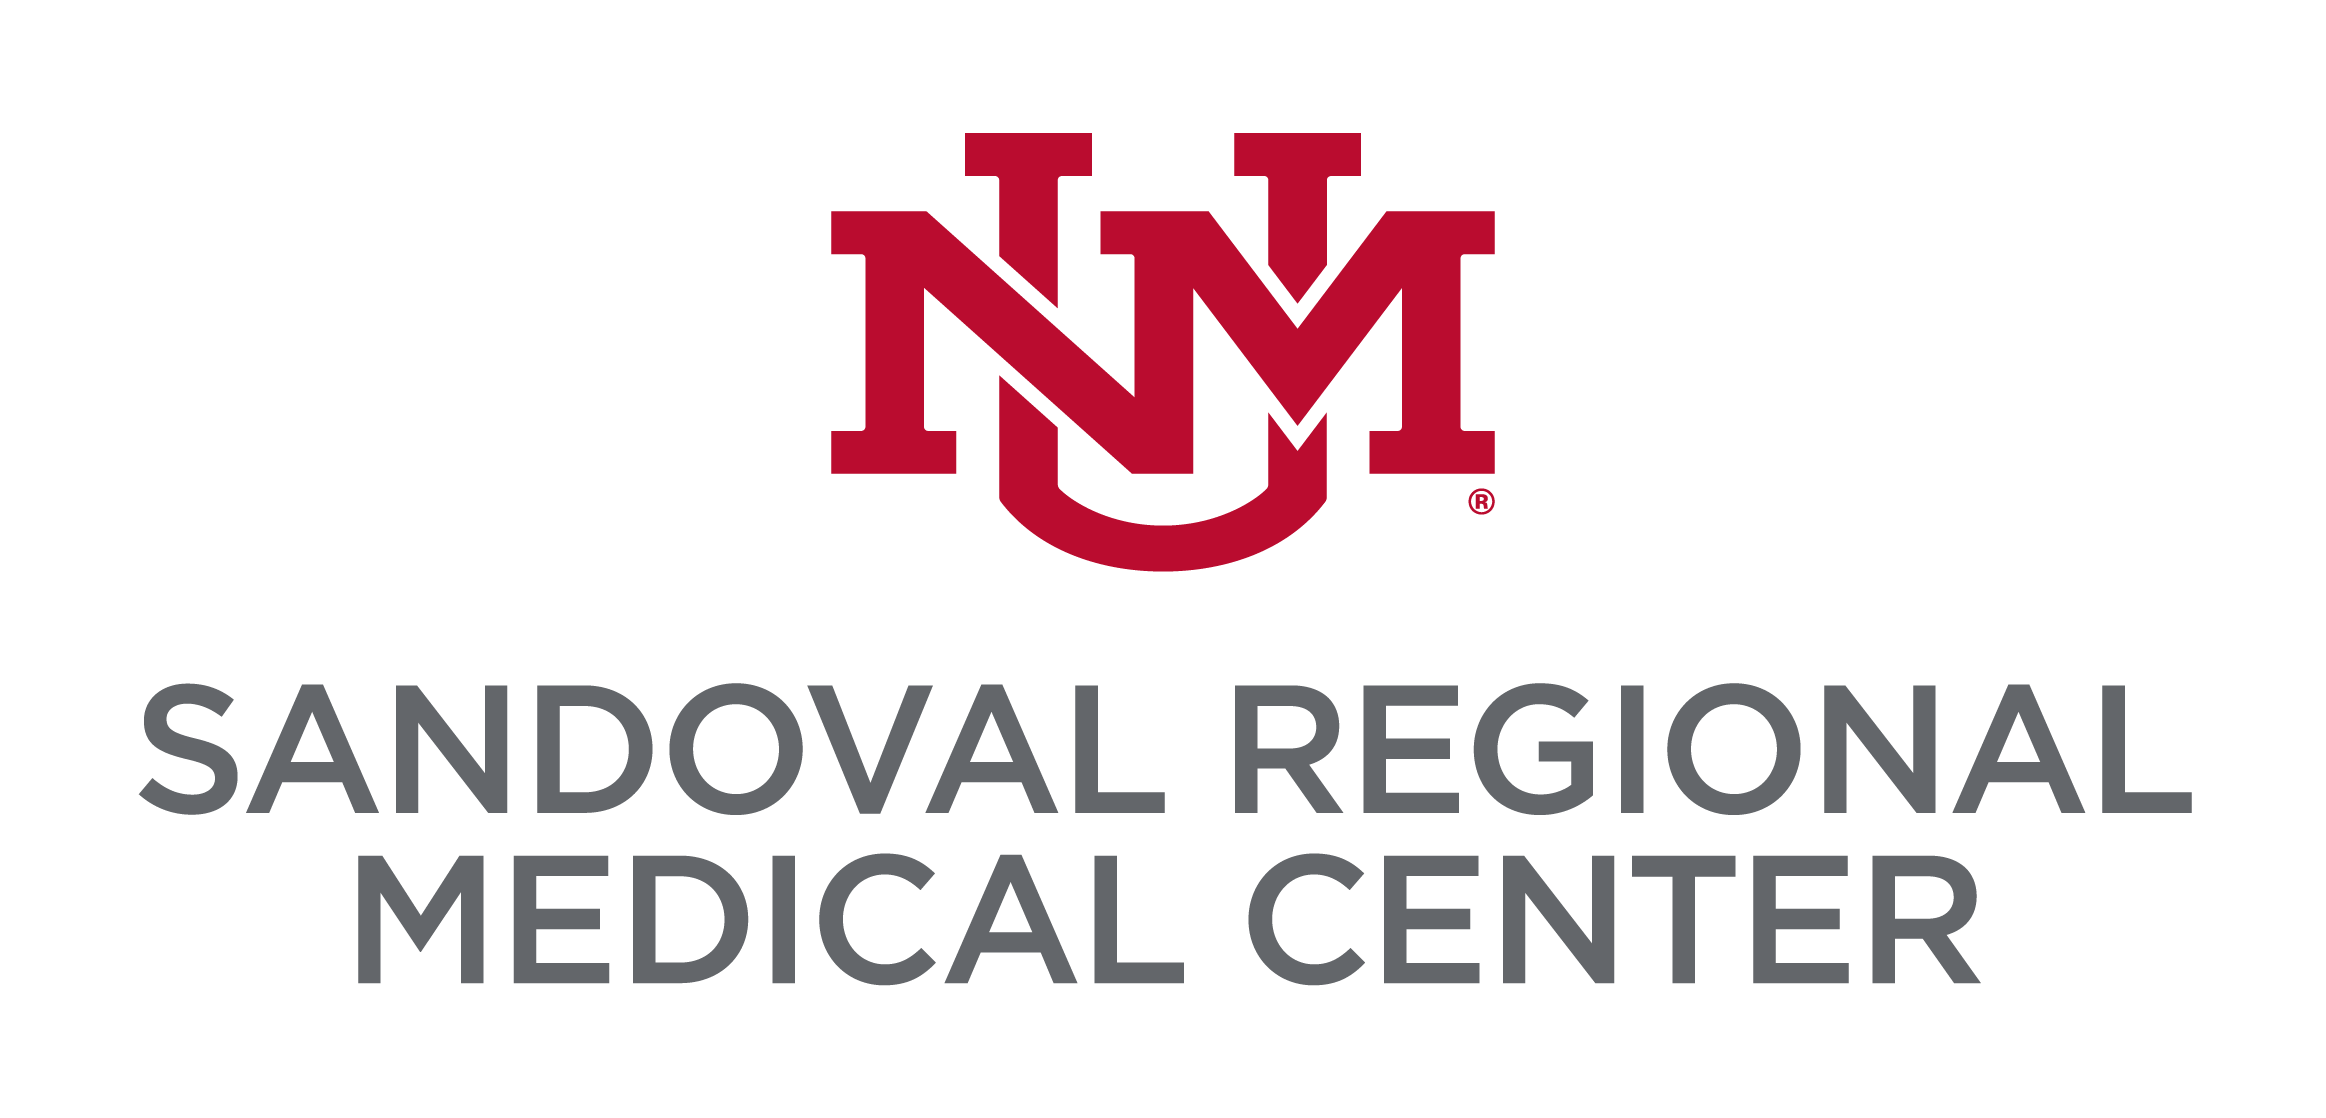 UNM Sandoval Regional Medical Center logo